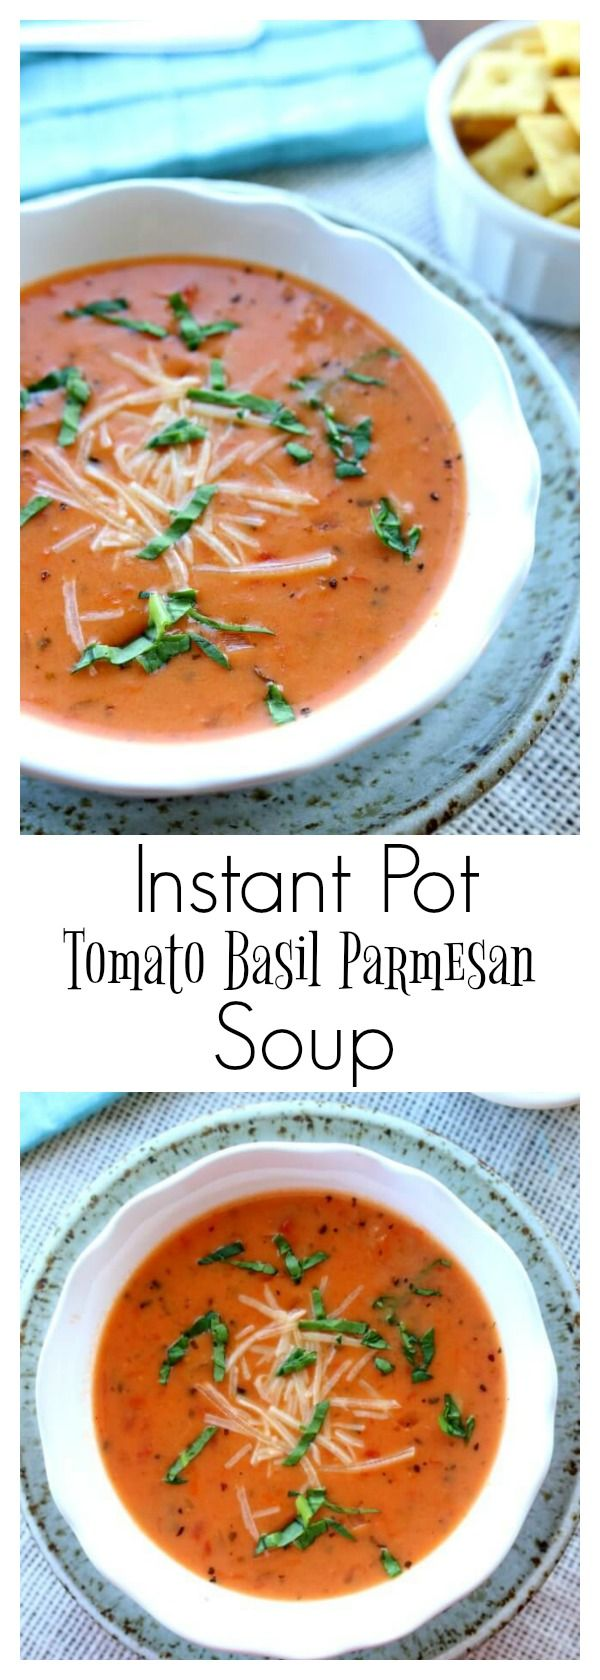 Instant Pot Tomato Basil Parmesan Soup– a creamy tomato based soup that is made from start to finish in 45 minutes thanks to the help of your pressure cooker. This is my favorite soup to make for company. I always get tons of compliments. I don't believe I've tasted soup at a restaurant that is as good as this version.